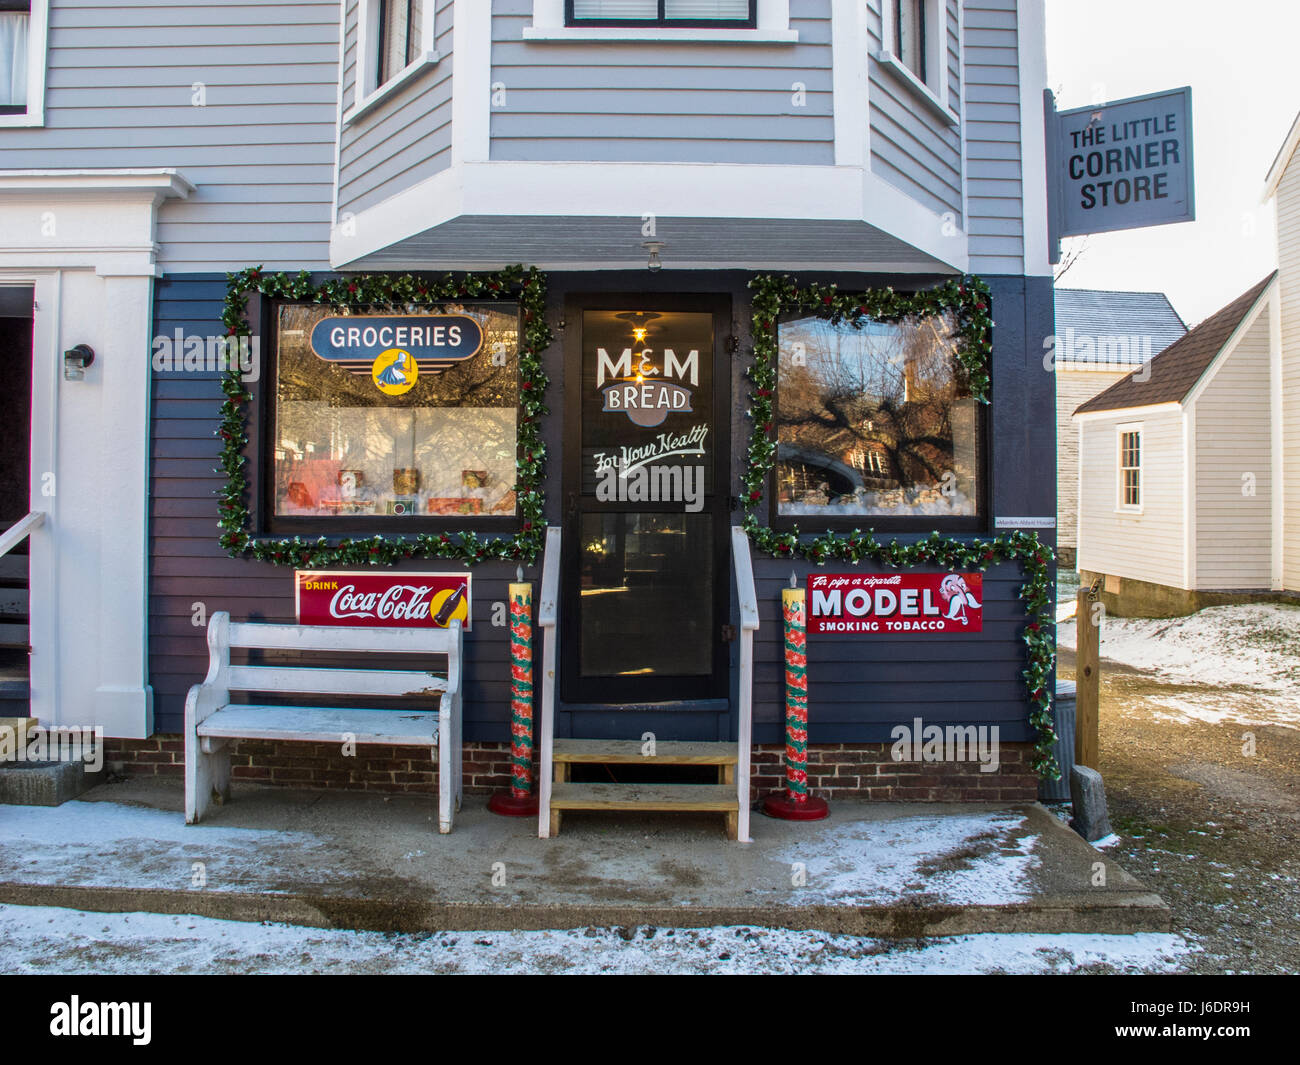 The Little Corner Store in Strawbery Banke in Portsmouth, New Hampshire - Stock Image